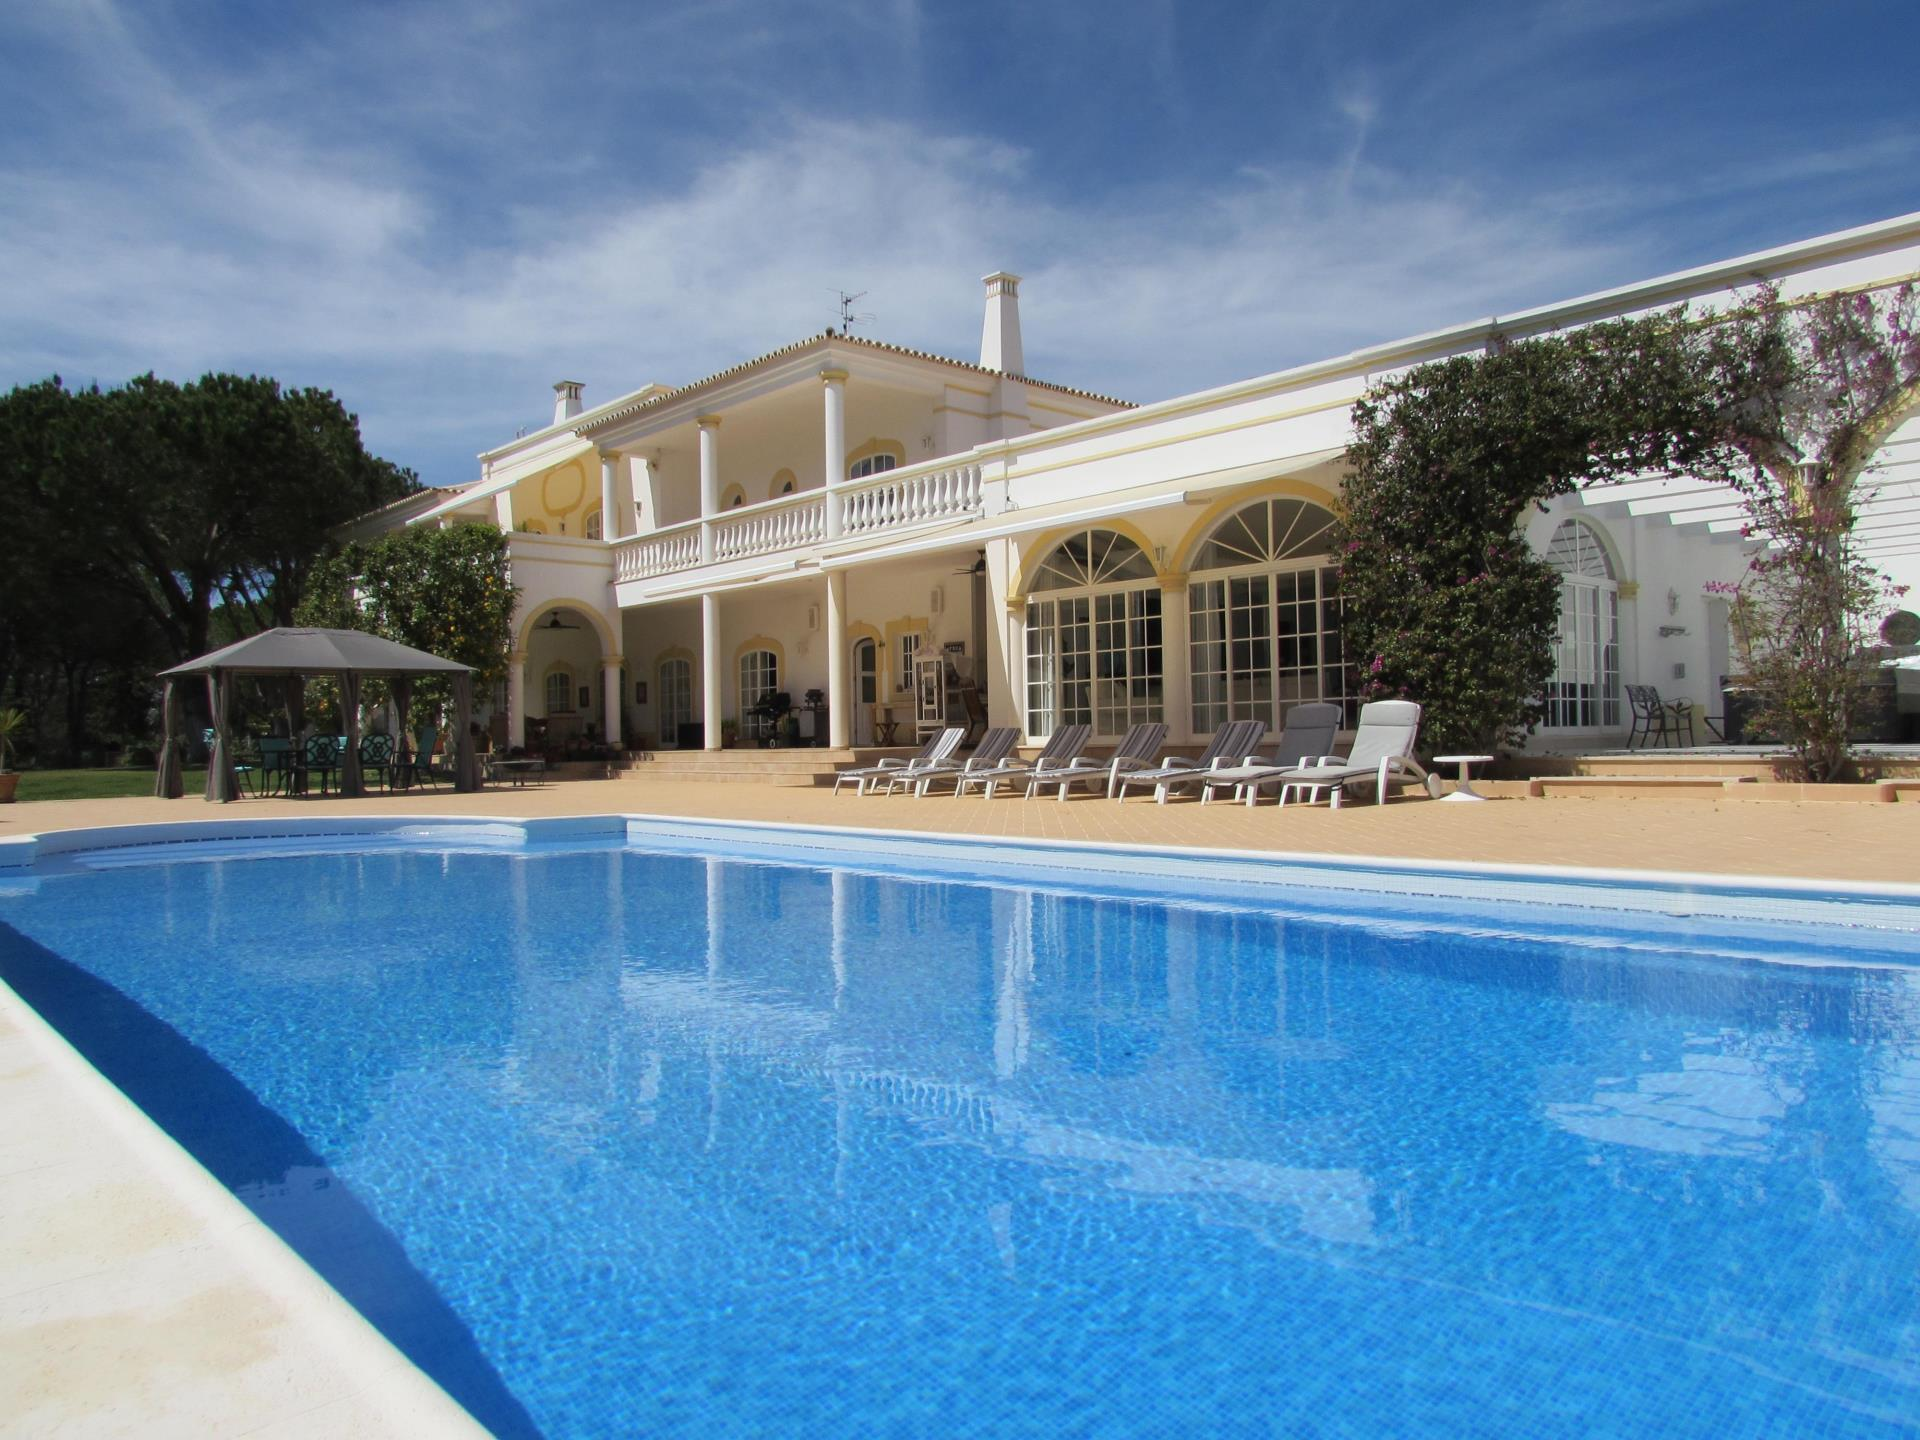 Maison unifamiliale pour l Vente à Detached house, 7 bedrooms, for Sale Loule, Algarve Portugal